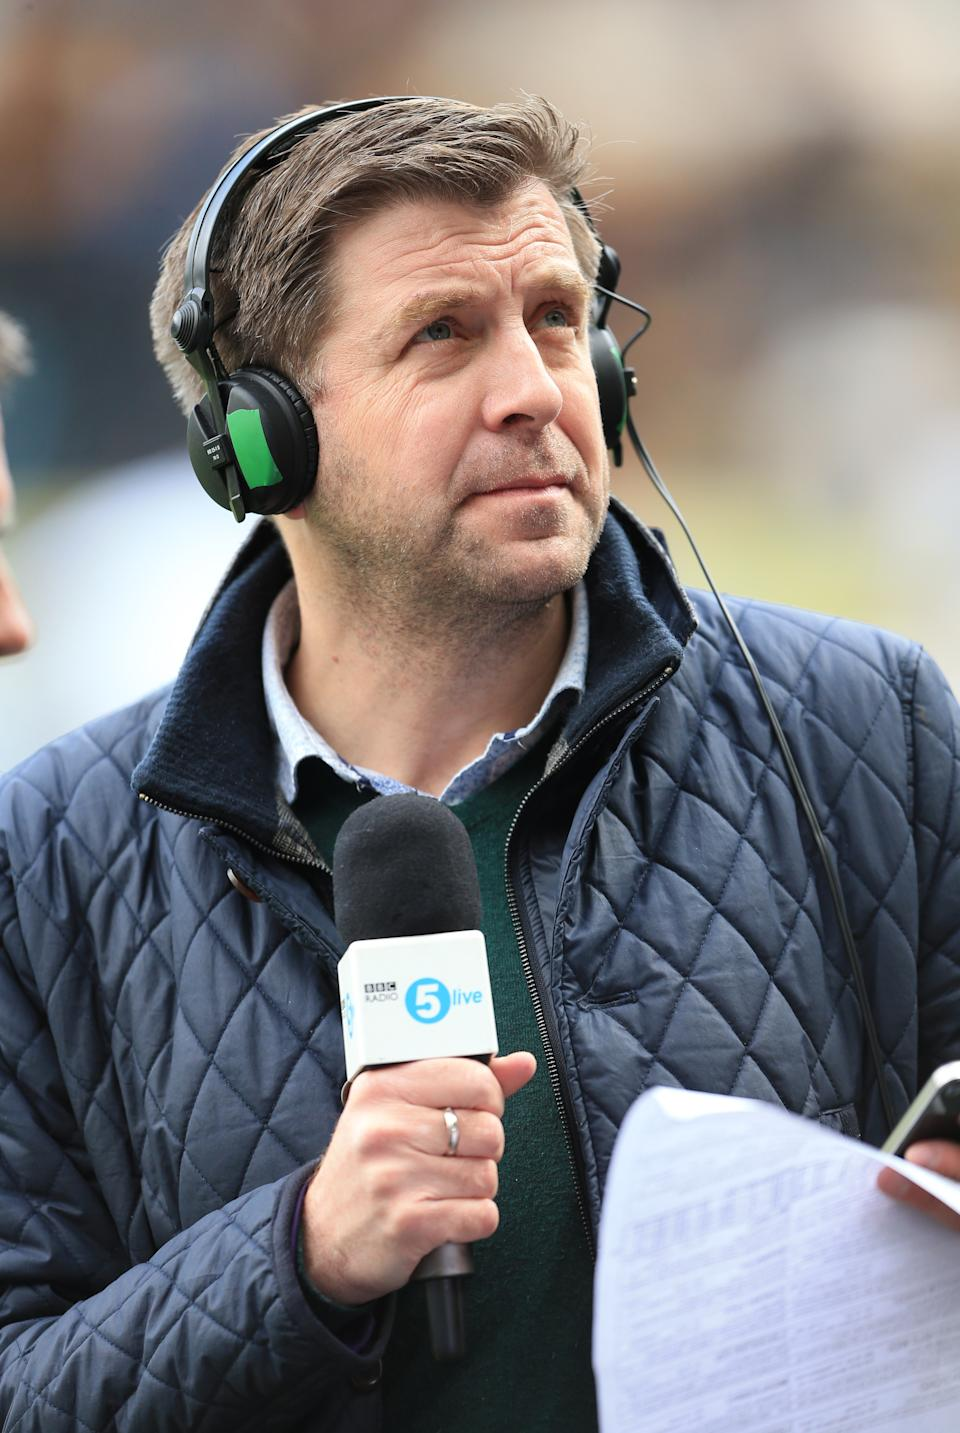 Radio 5 Live presenter Mark Chapman   (Photo by Mike Egerton/PA Images via Getty Images)